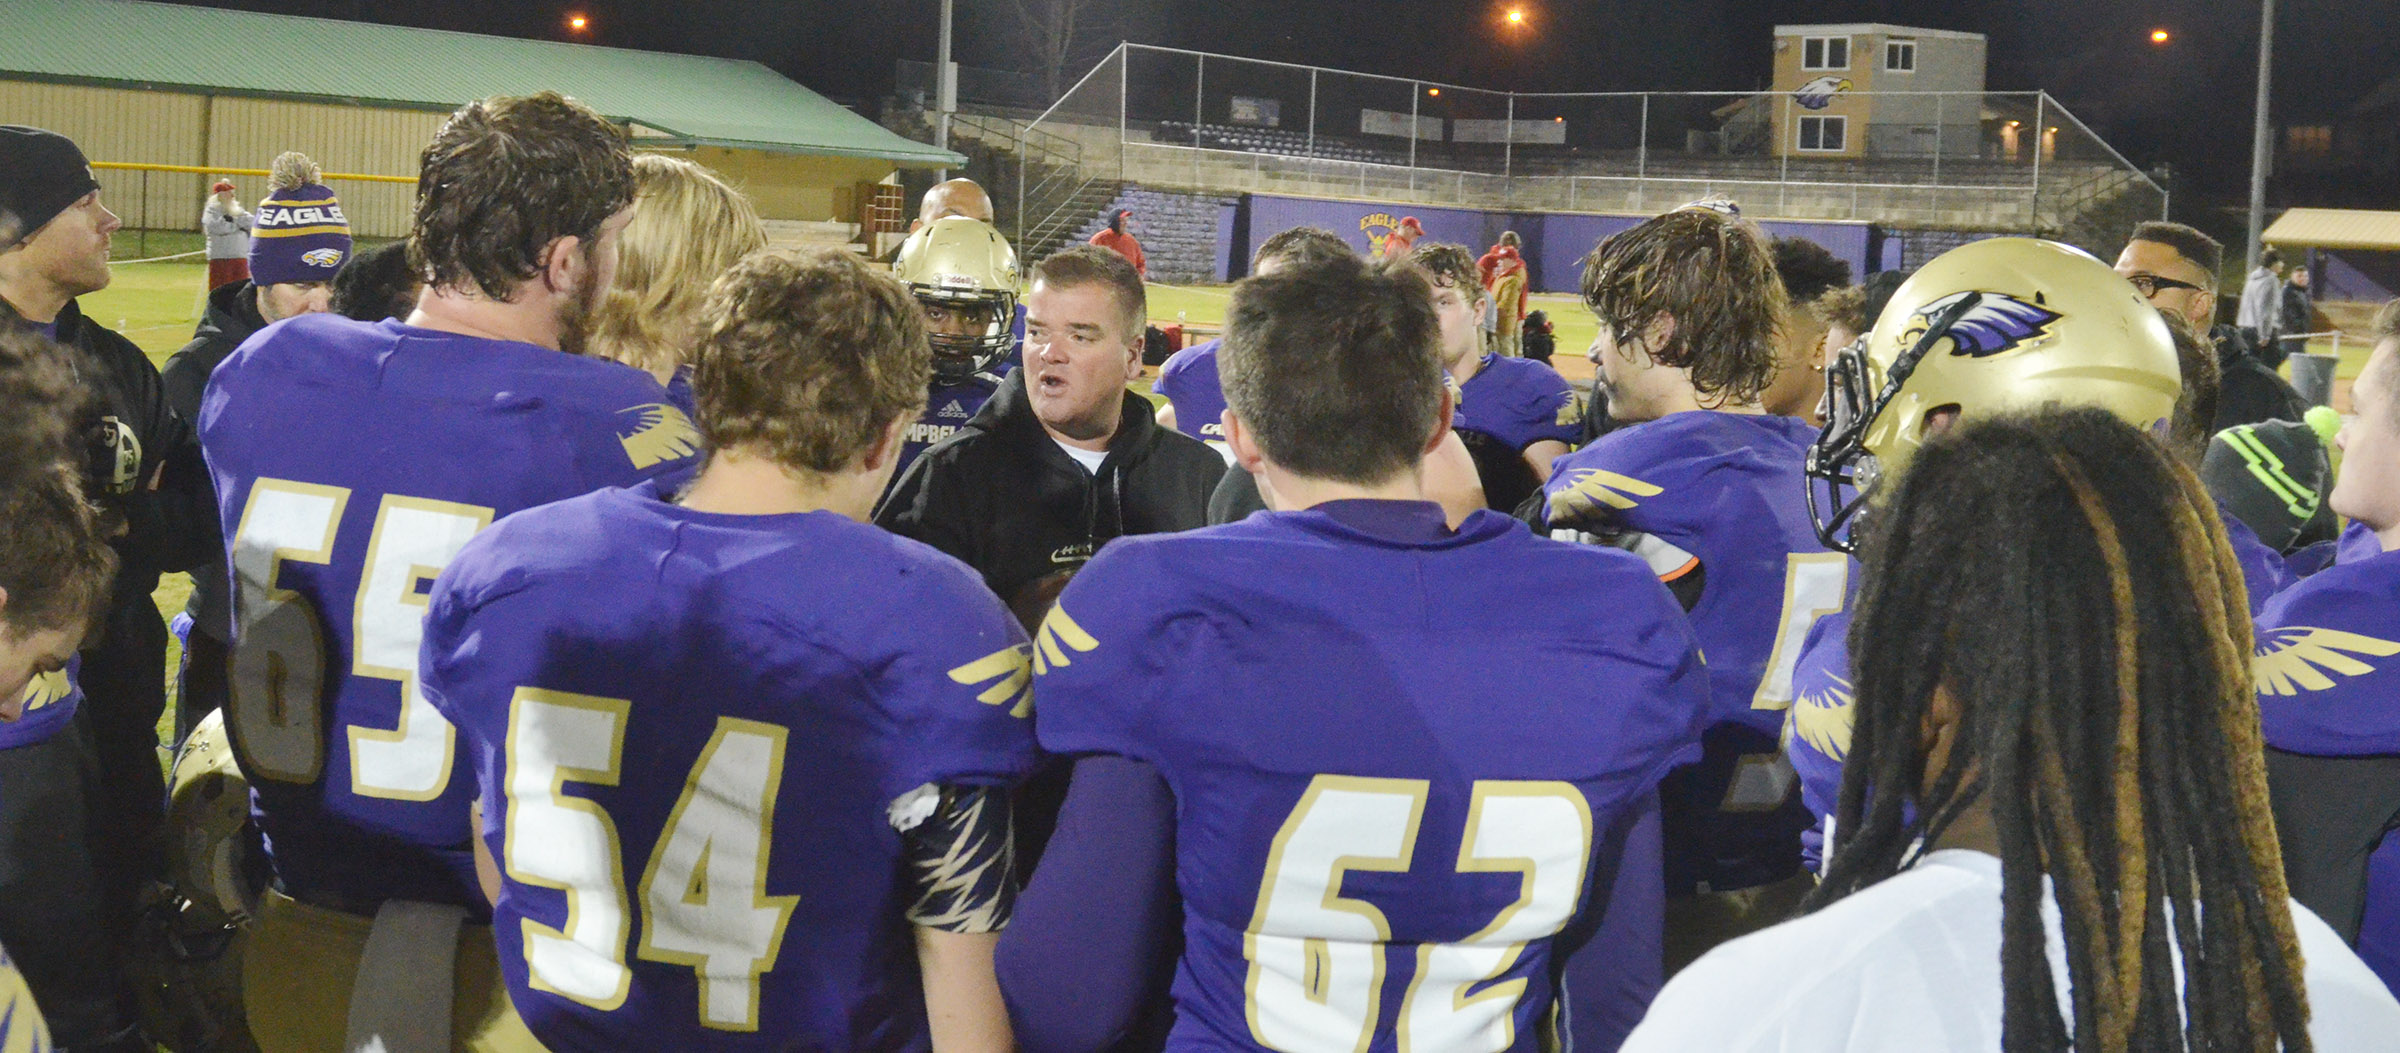 CHS head football coach Dale Estes tells his players he is proud of them.